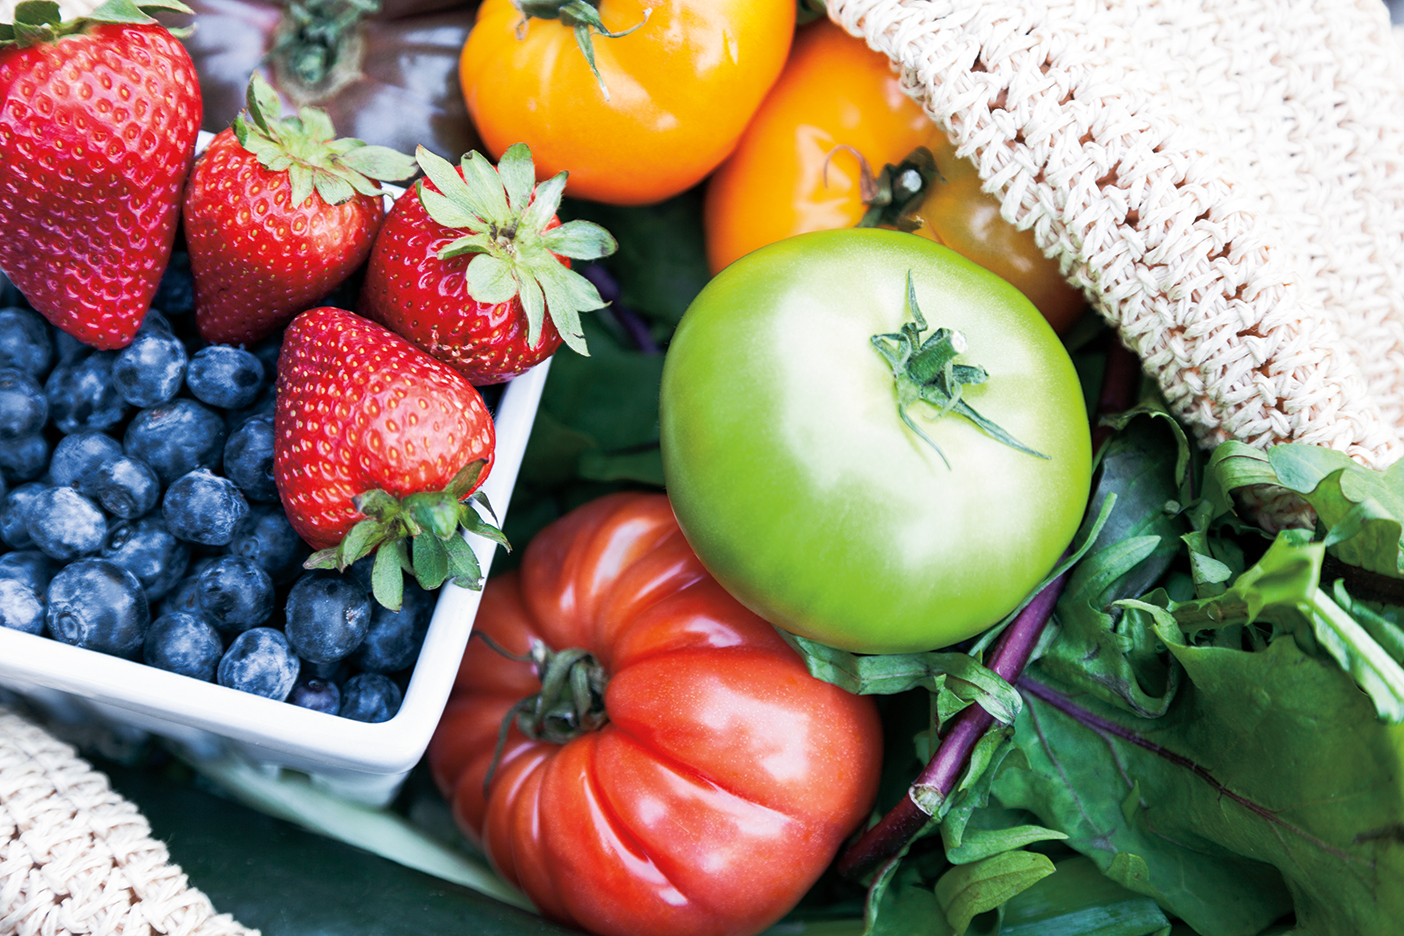 Summer is the peak harvest time for many varieties of fruits and vegetables including berries, tomatoes and greens.